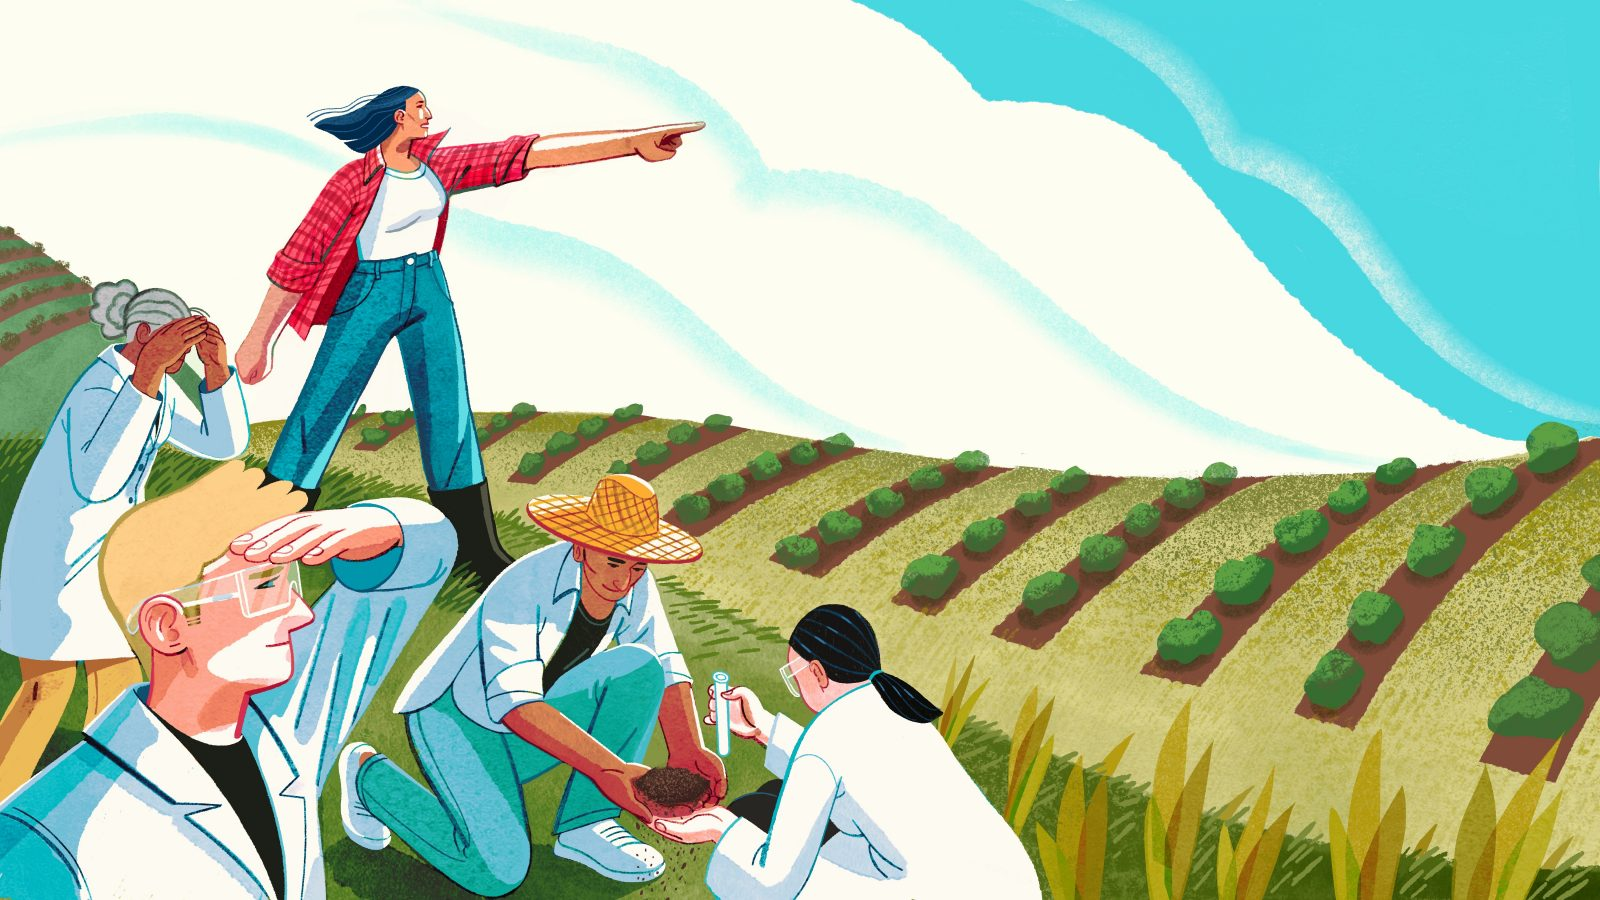 Illustration of researchers and farmers